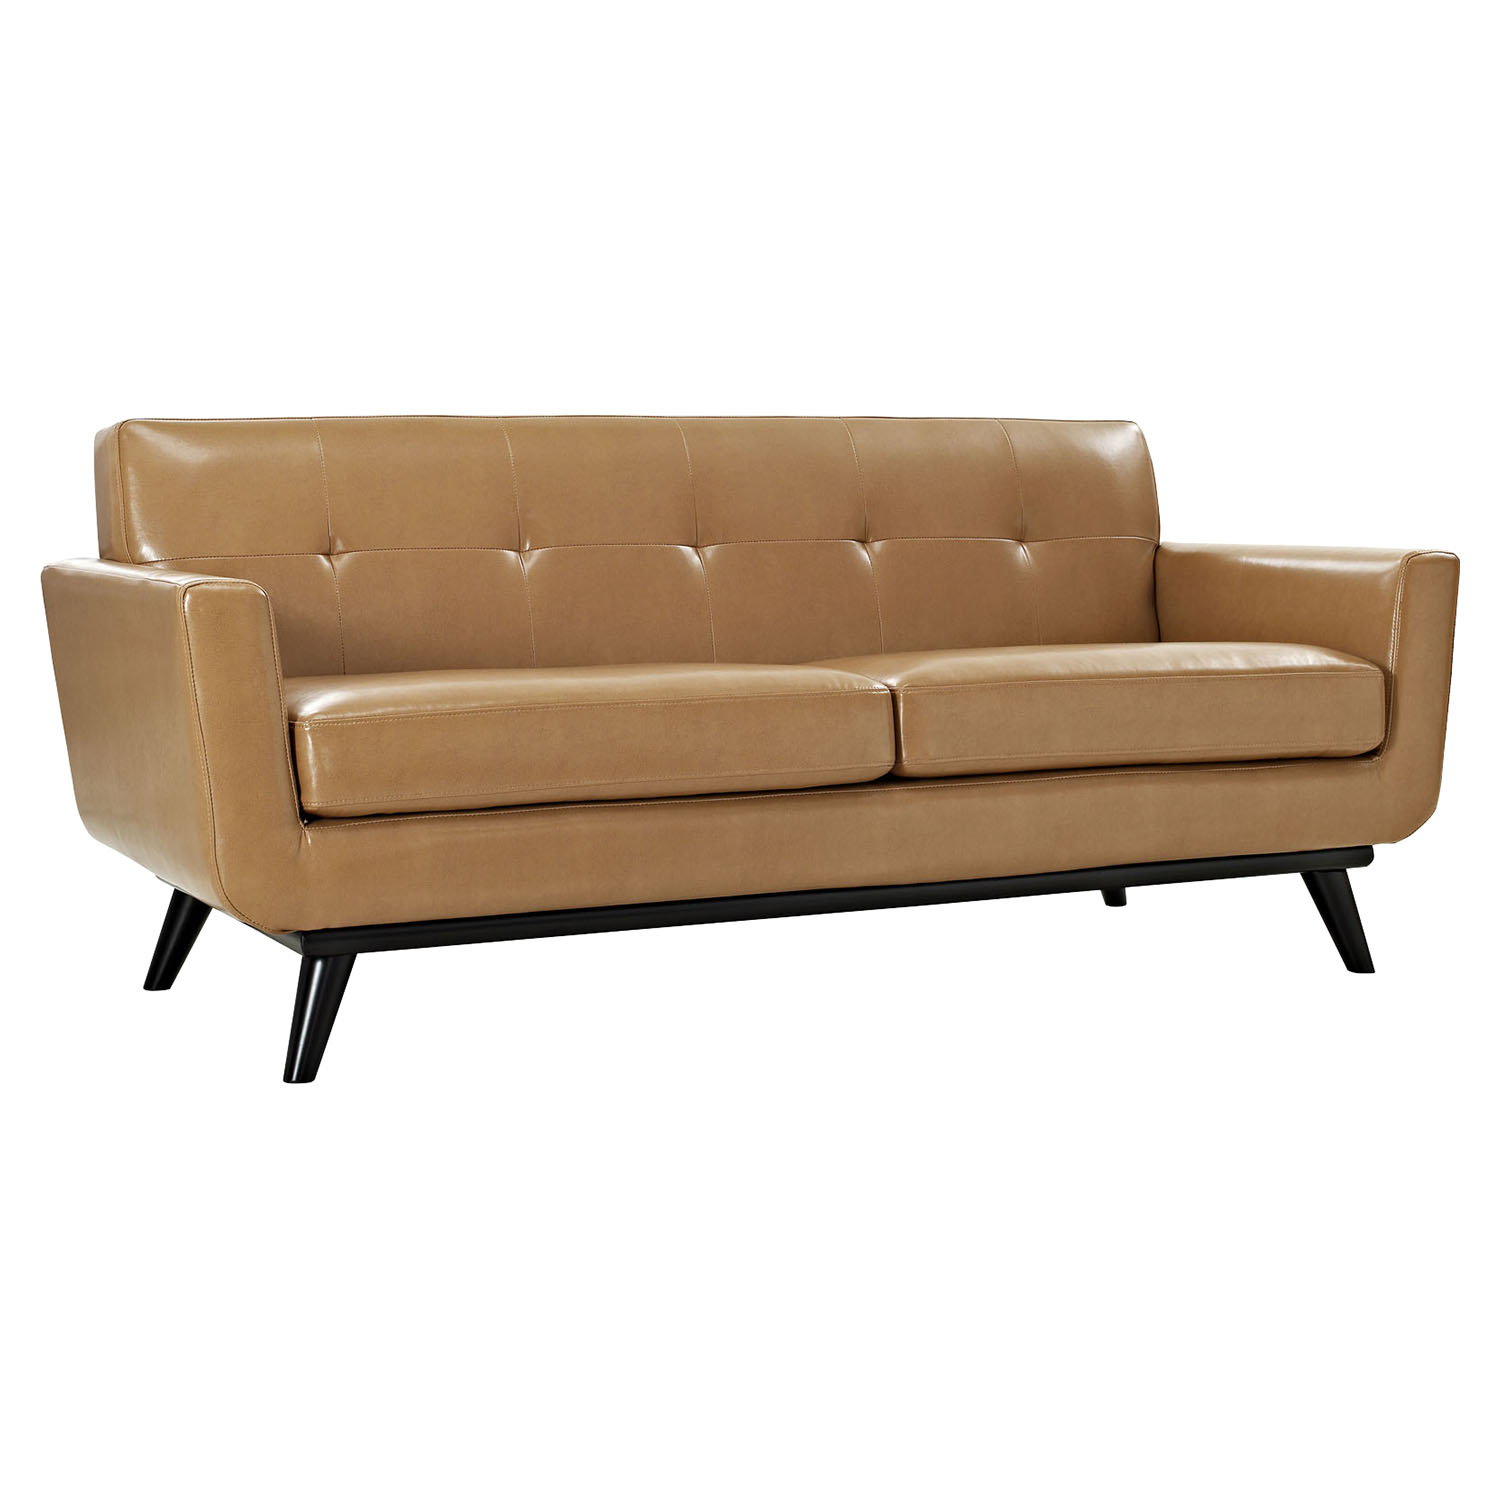 Engage 2 Pieces Leather Sofa Set - Flared Legs, Tan - EEI-1767-TAN-SET